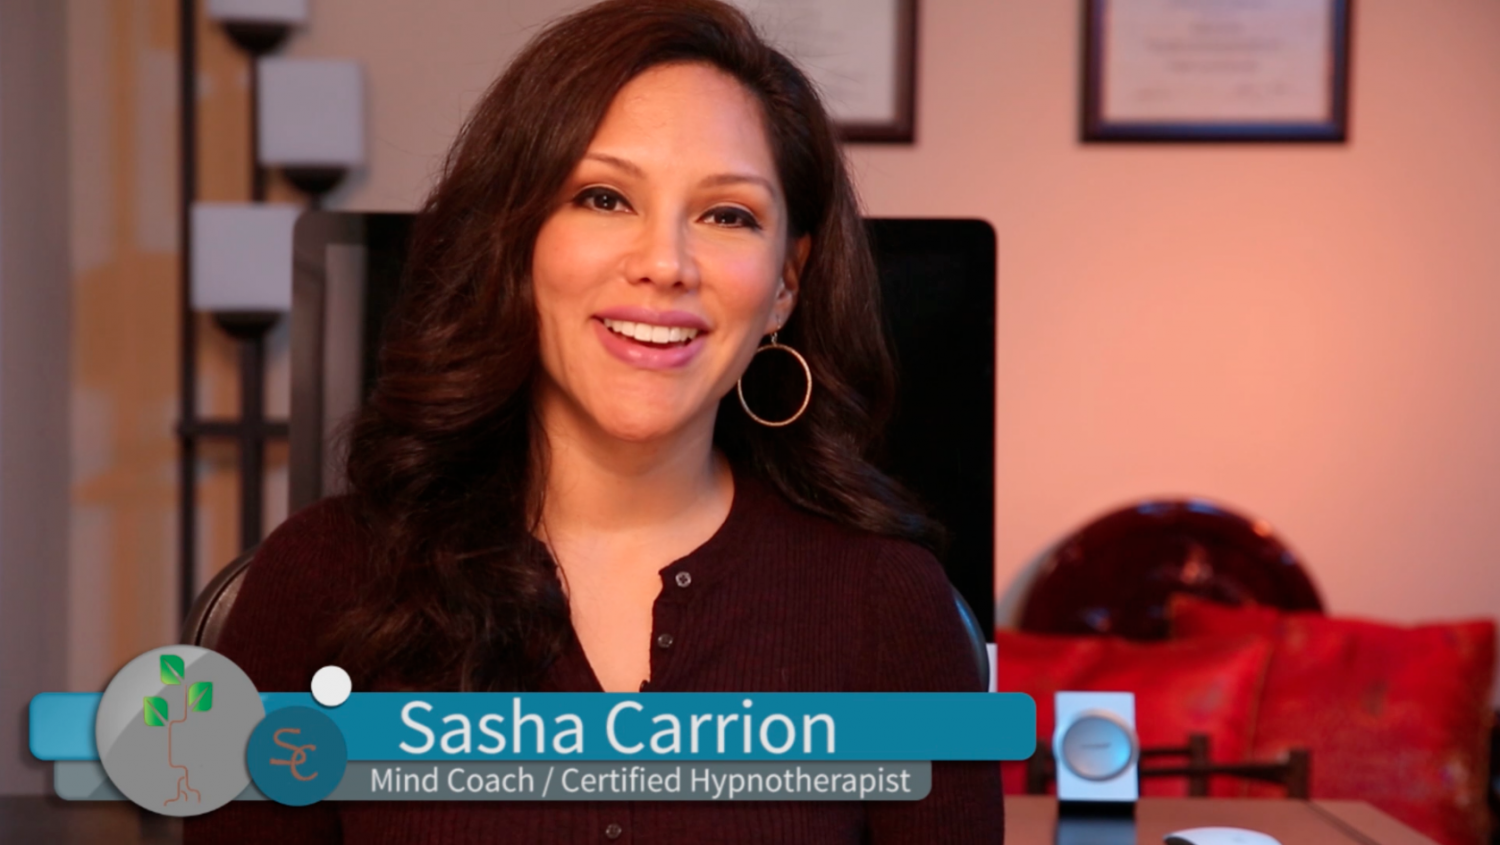 Why Do I Love Hypnotherapy with Hypnotherapist Sasha Carrion? (Video)